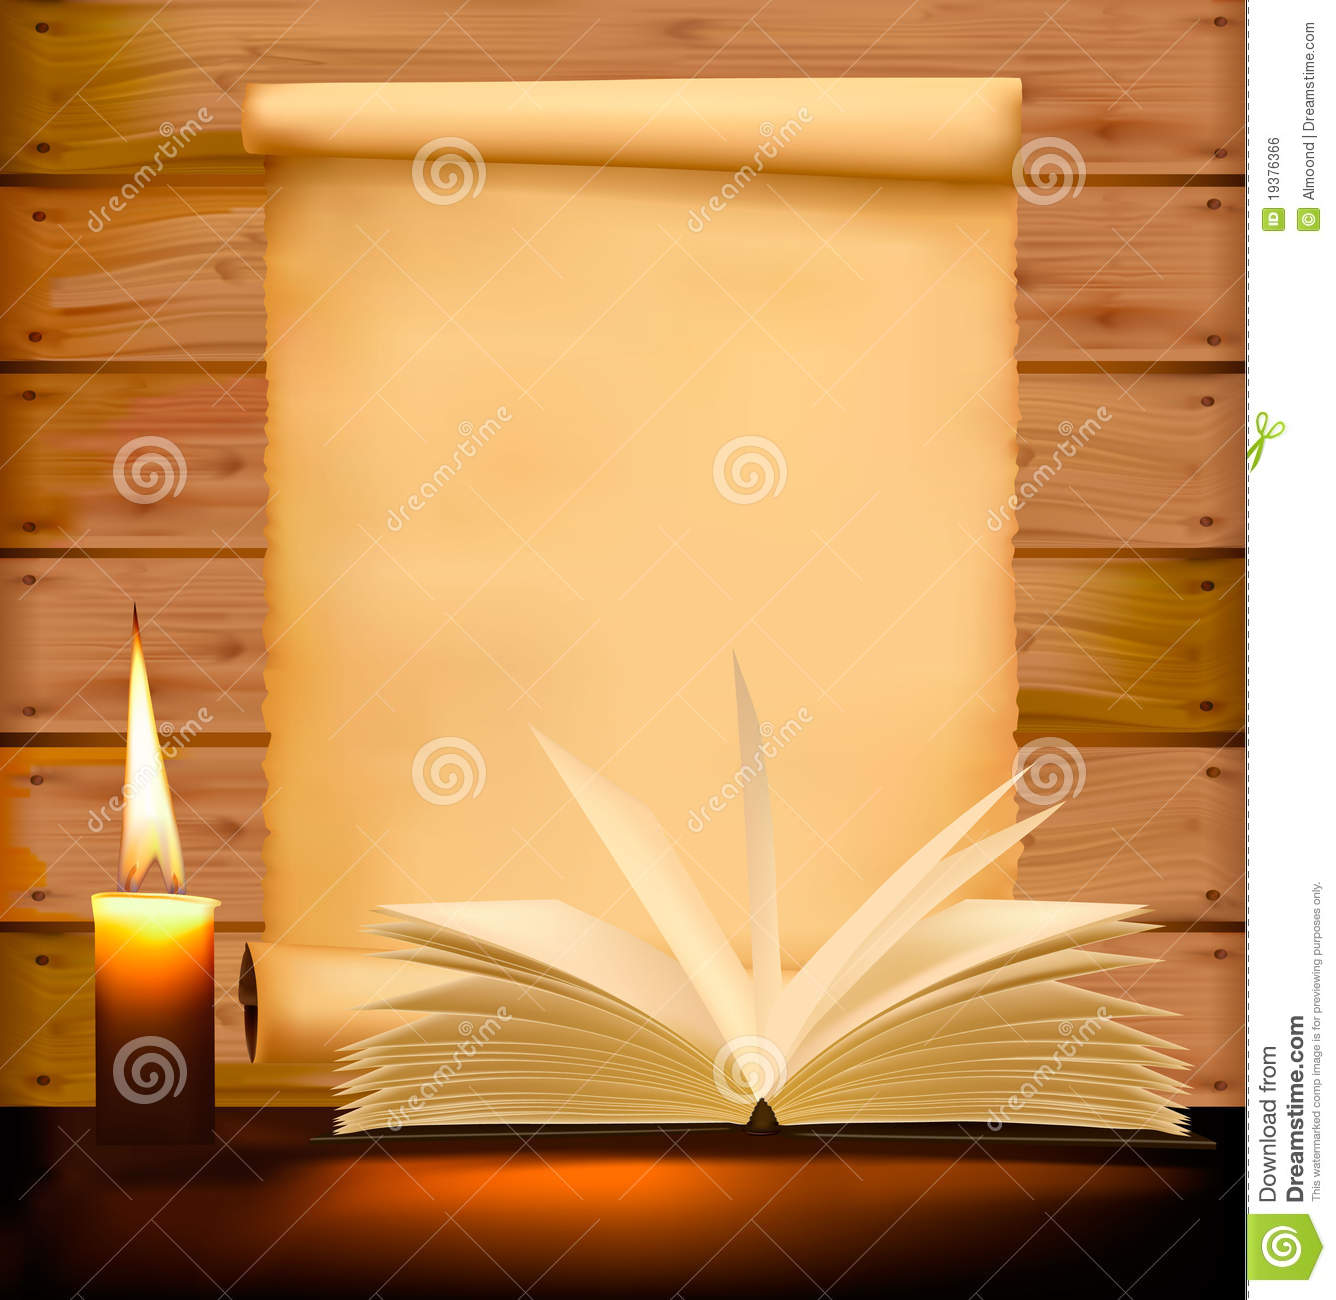 Fall Feather Wood Wallpaper Old Paper Candle And Open Book On Wood Background Stock